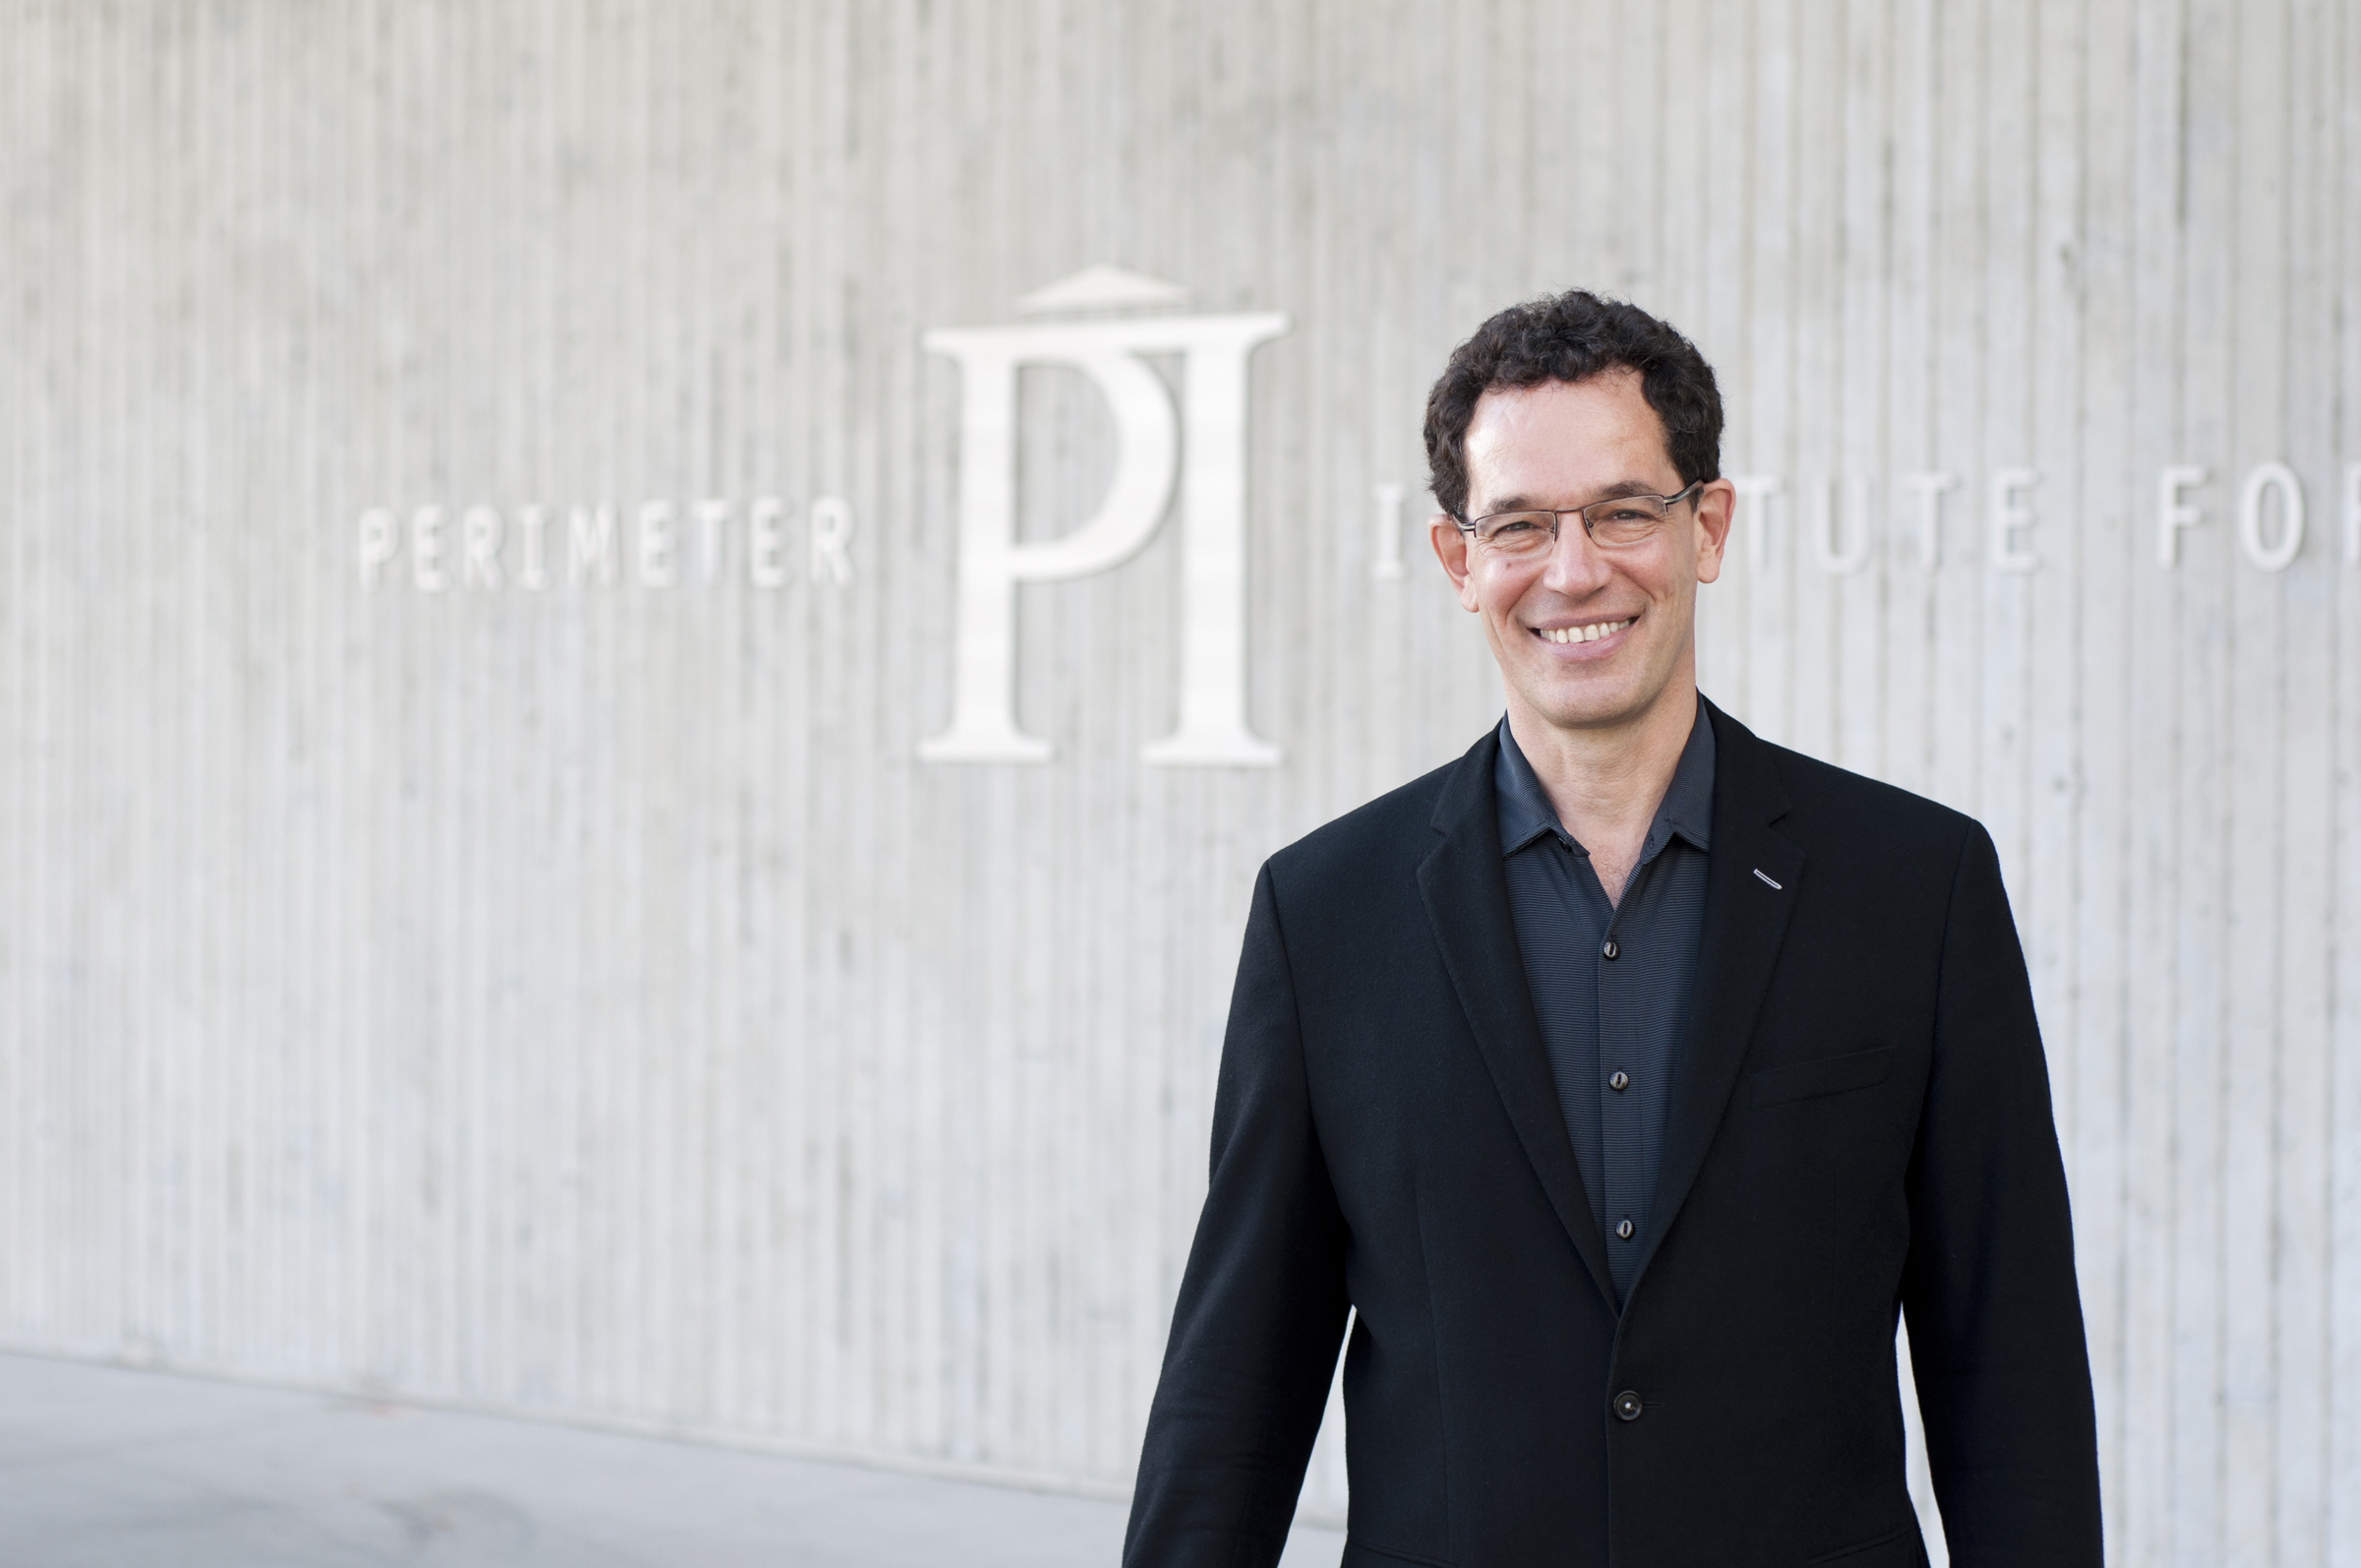 Neil Turok, Perimeter Institute's Director, wins Tate Medal from the American Institute of Physics